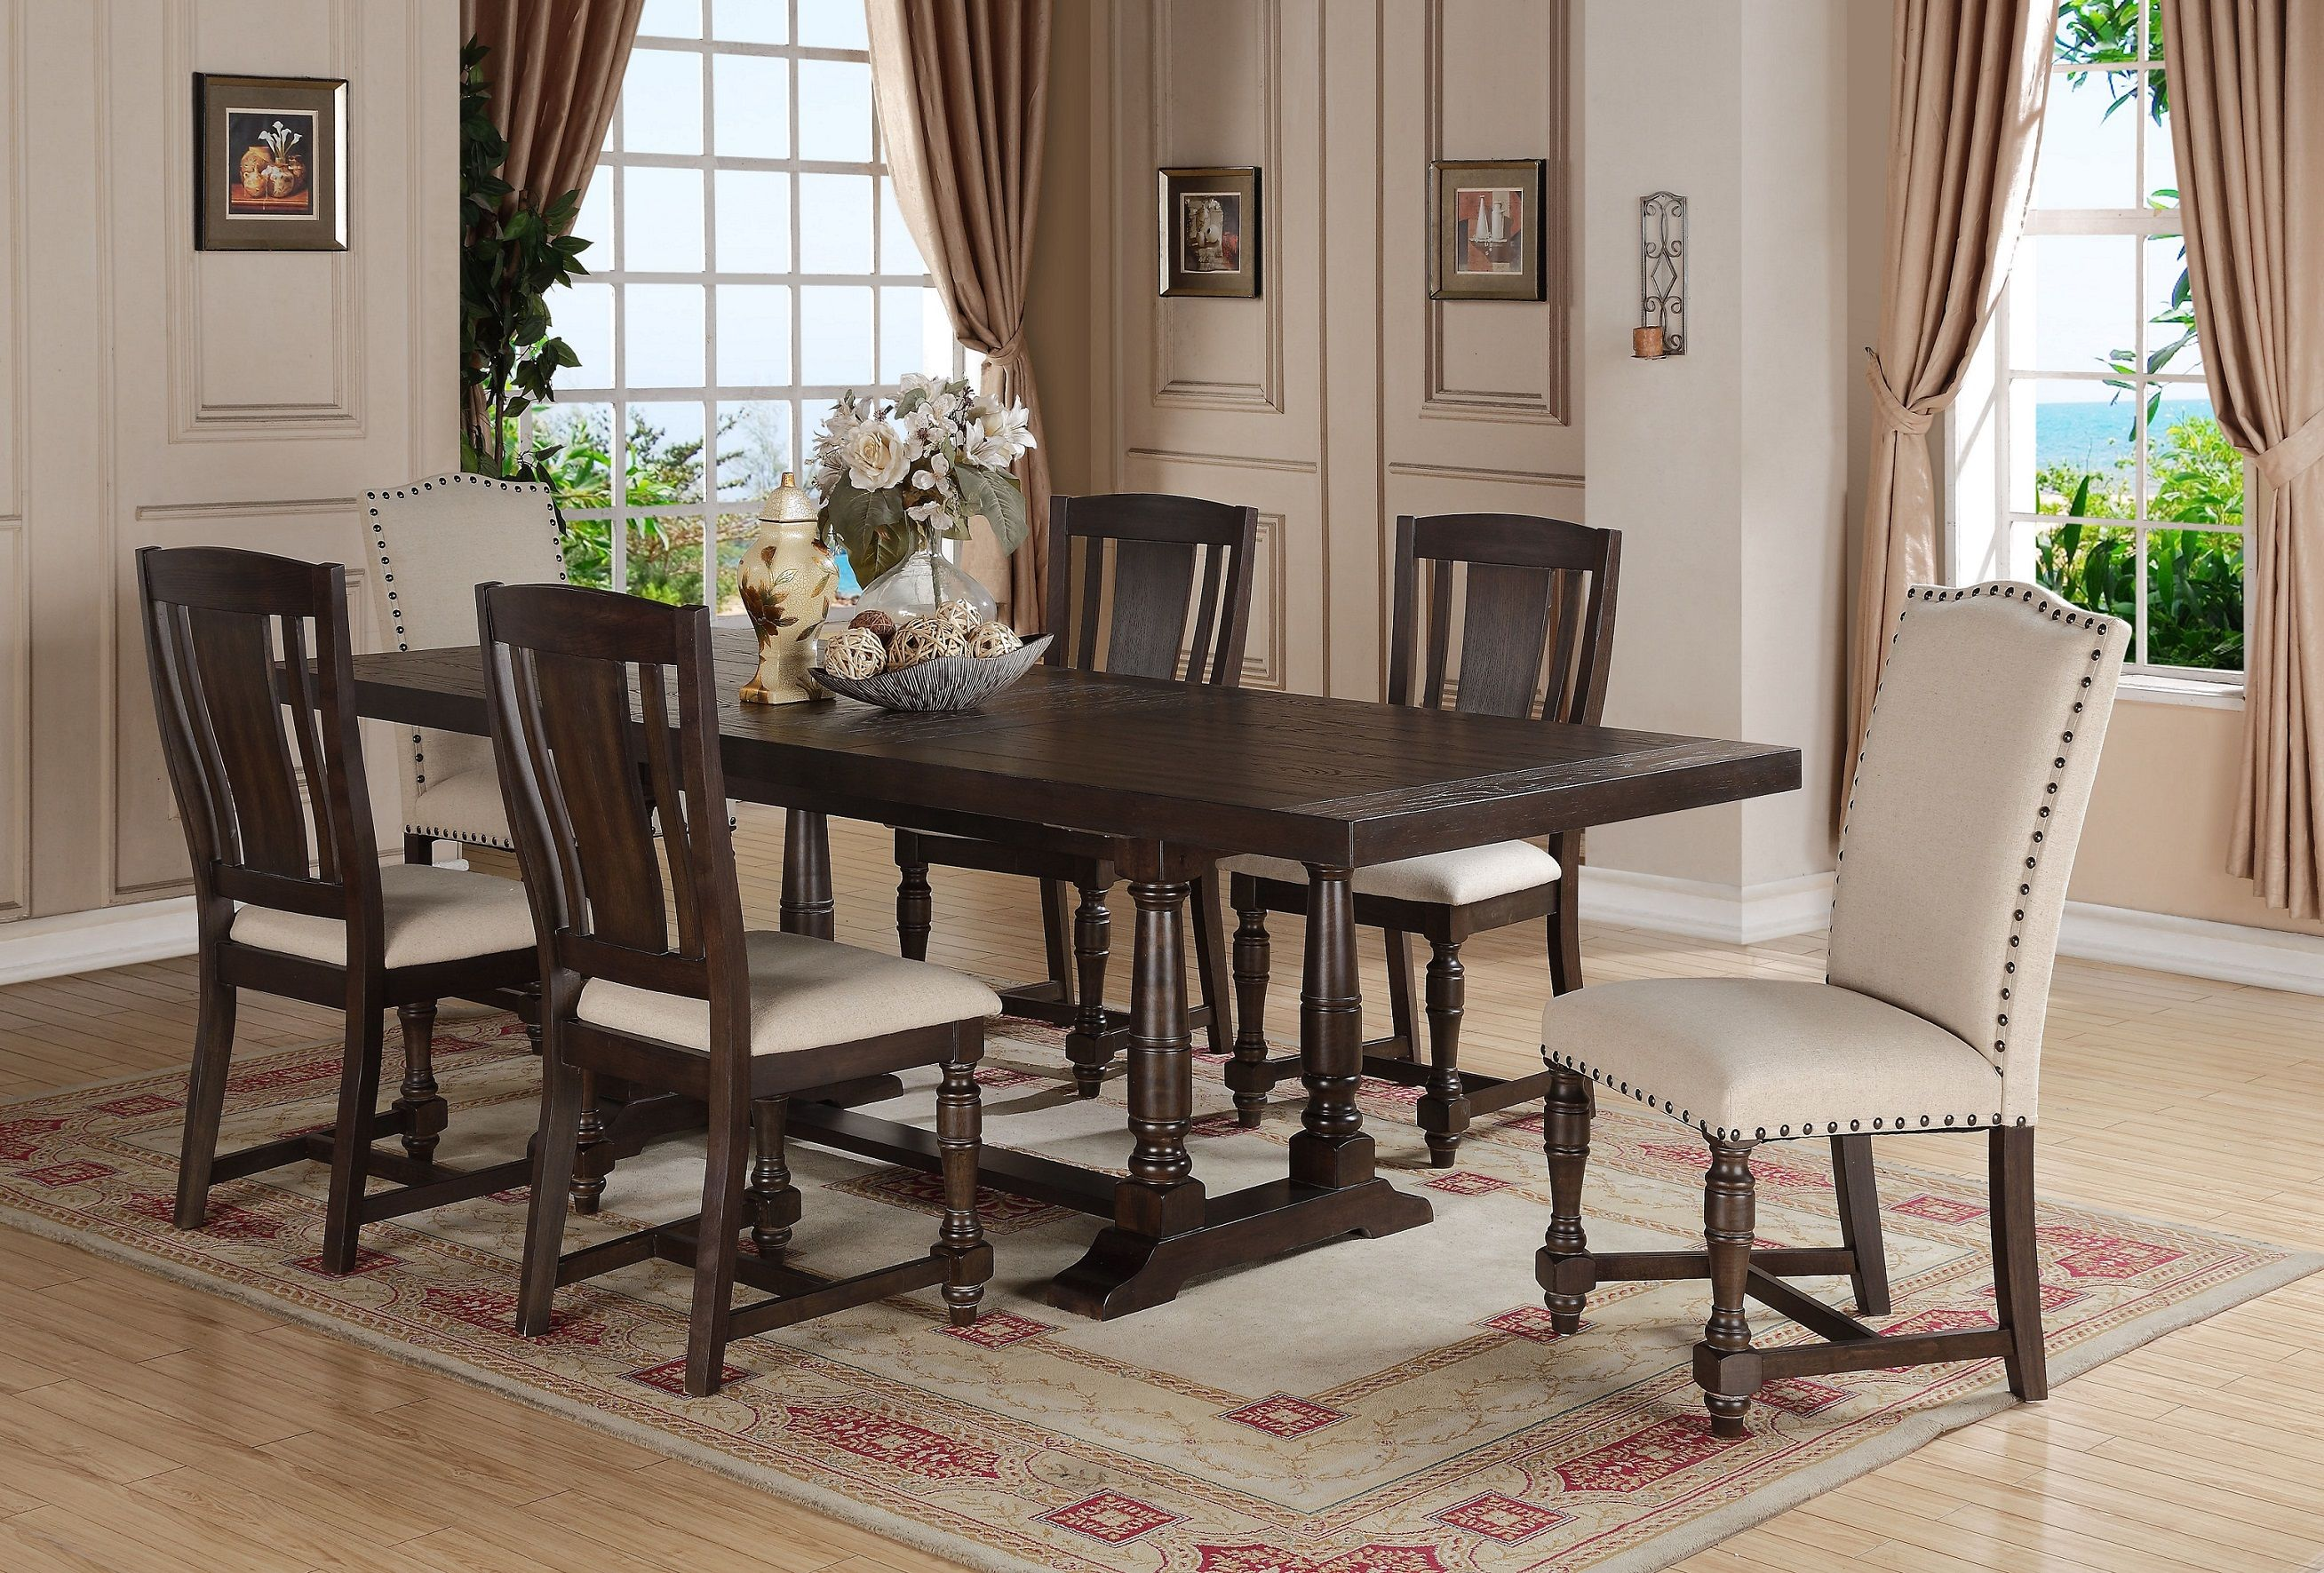 xcalibur trestle table dx14296 dining tables from winners only at